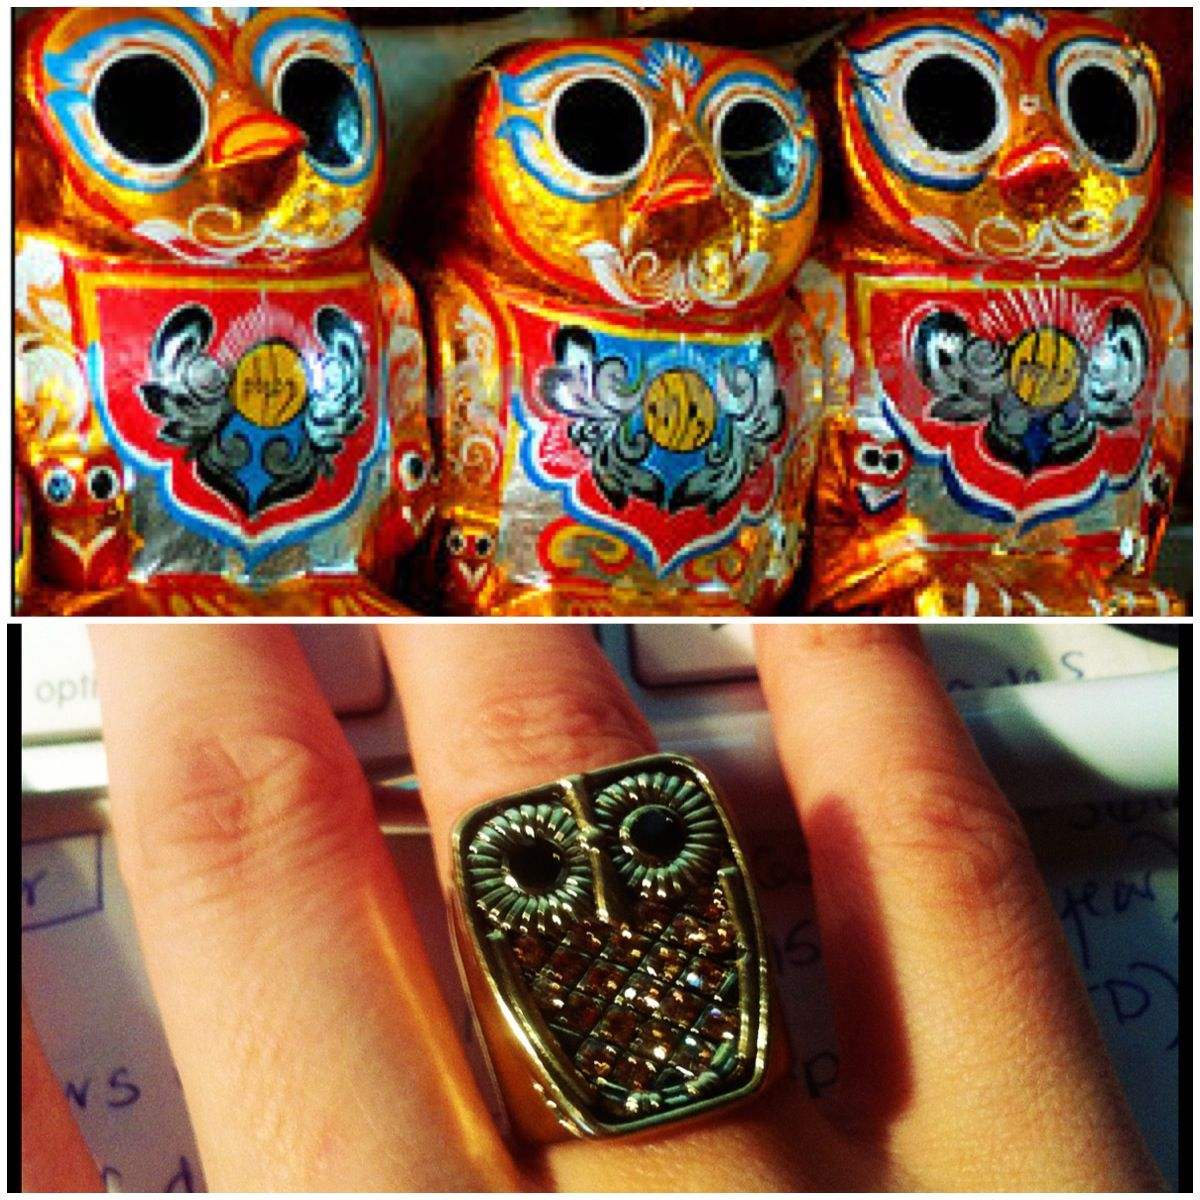 Owls Are A Symbol Of Luck And Fortune In Burma This Piece Of Ring Bling I Found At Wink Beauty Looks Just Like The Lucky Indian Elephant Skull Tattoo Tattoos